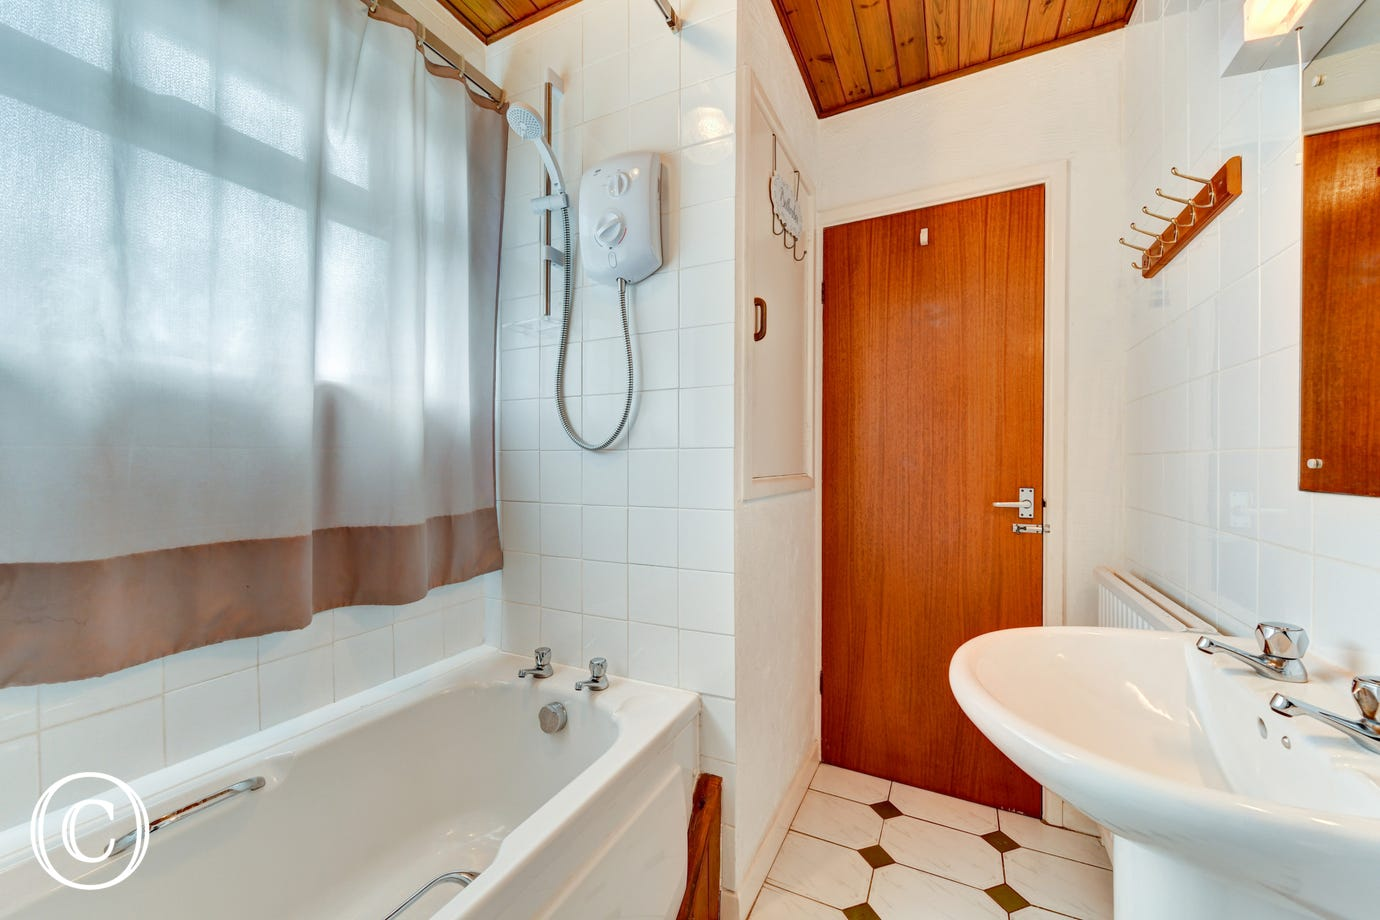 H28411 - Bathroom 2